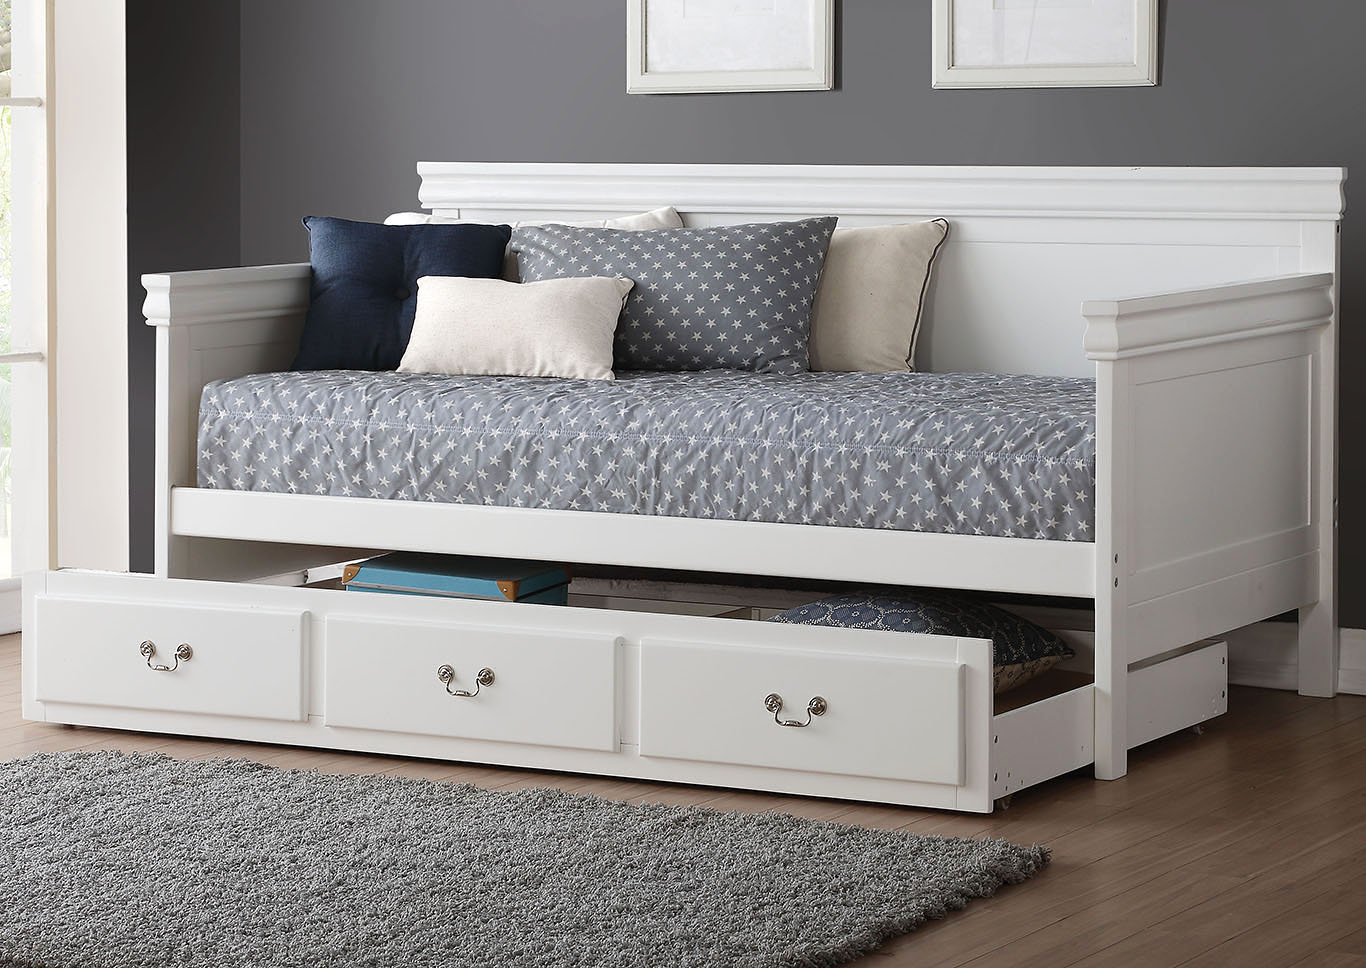 Bailee White Twin Daybed,Acme